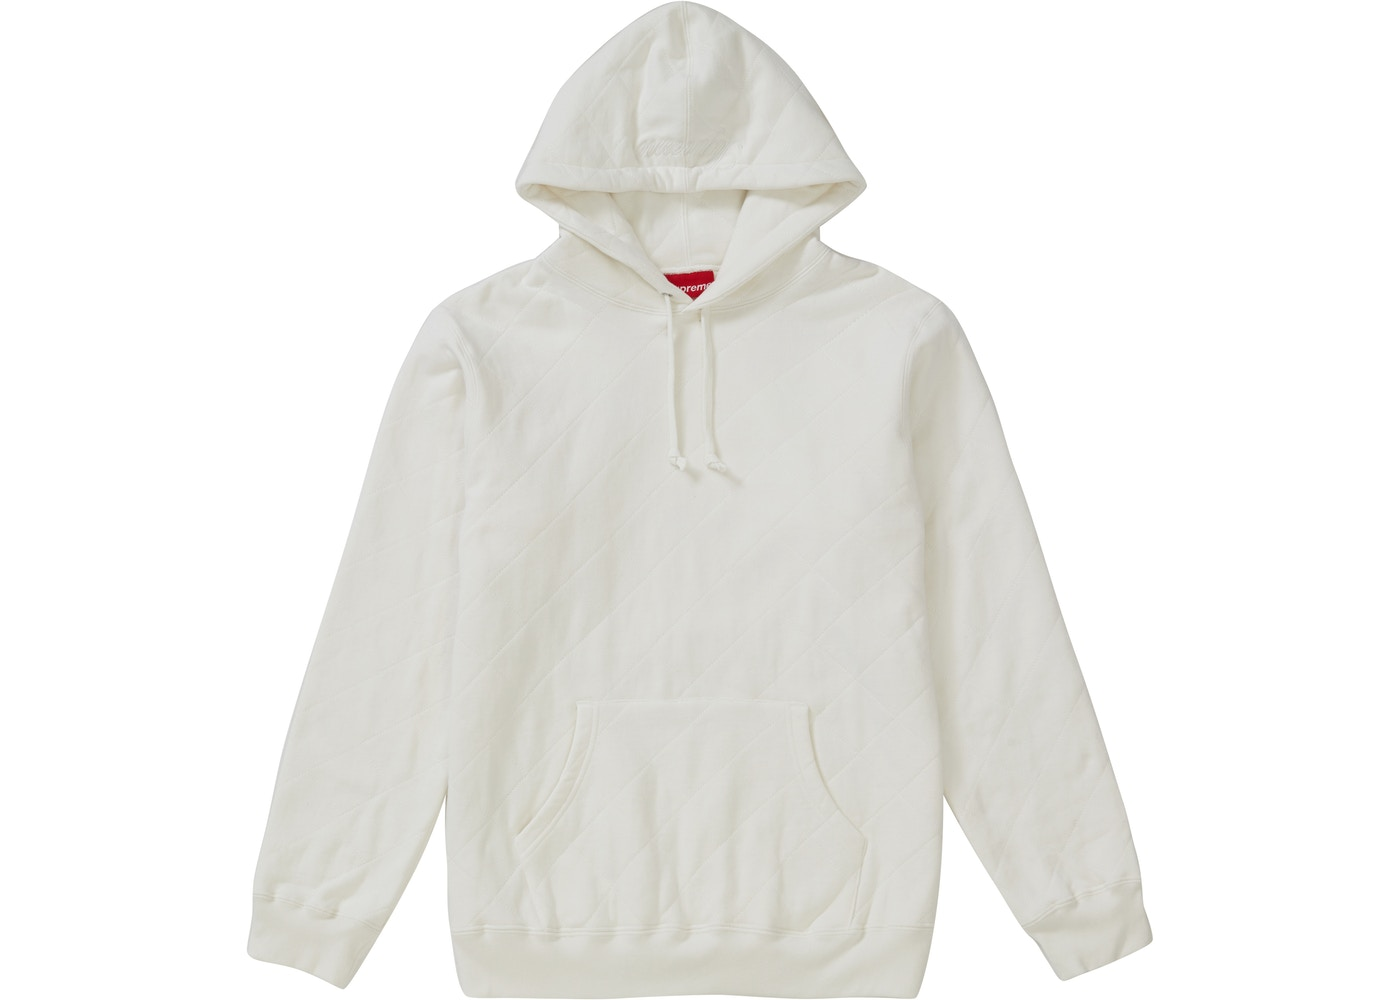 8d8080629 Supreme Quilted Hooded Sweatshirt White - FW18